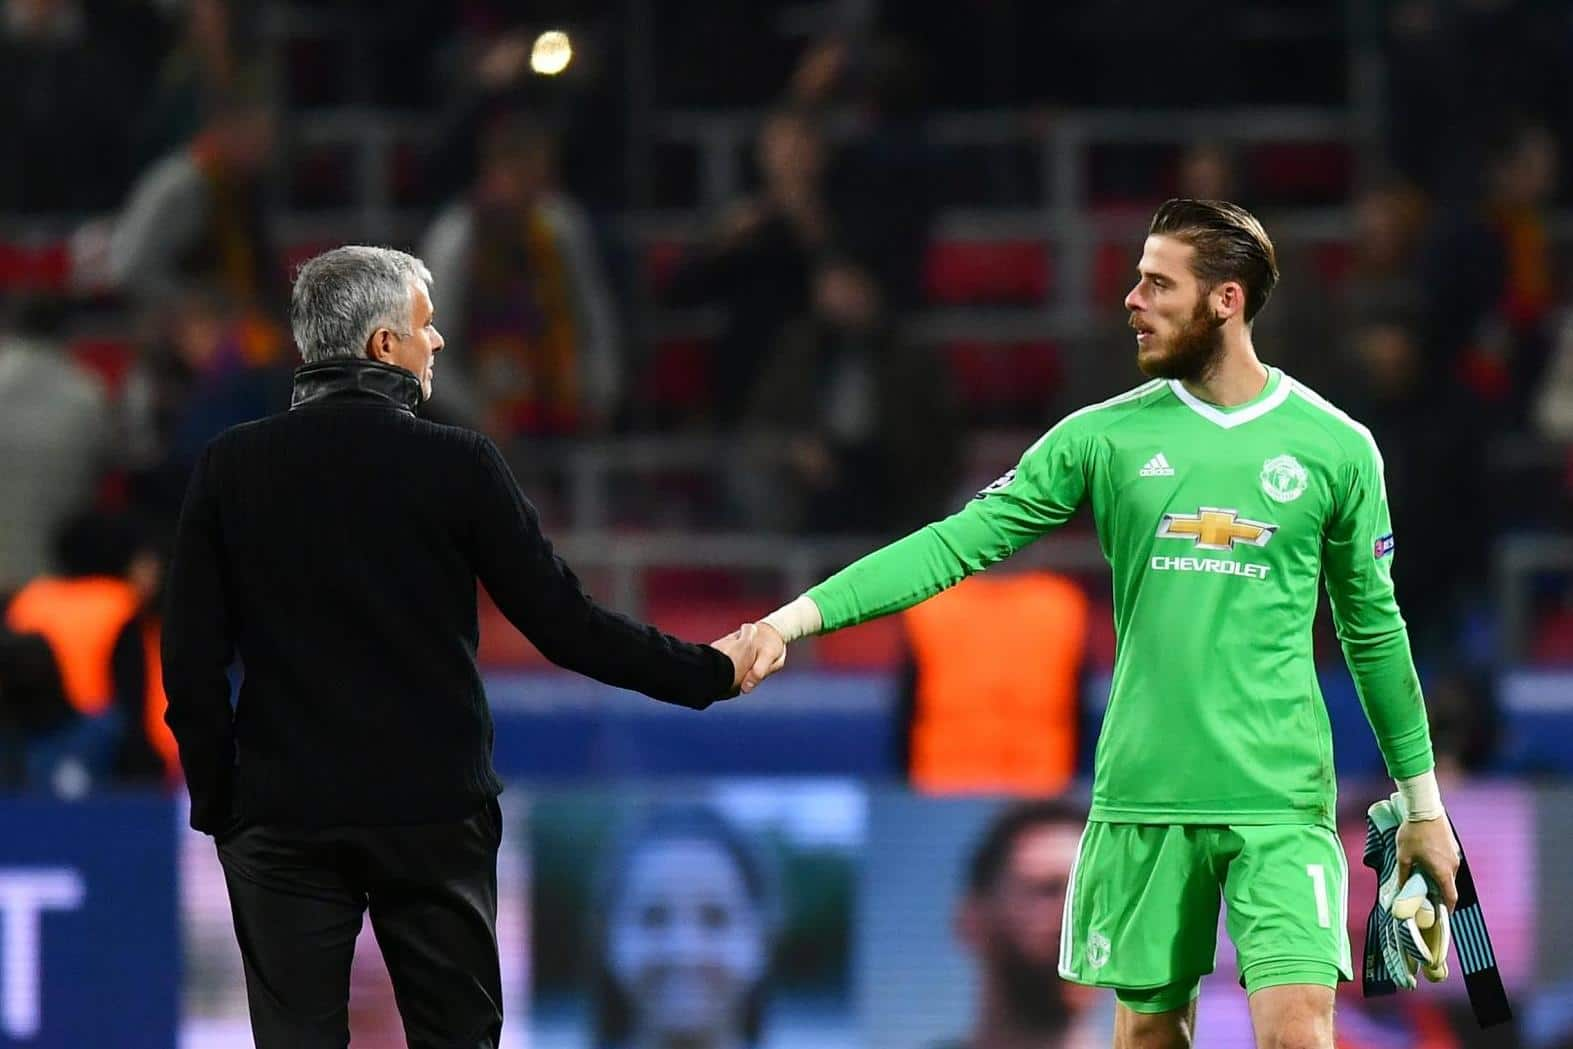 Jose Mourinho offers David De Gea to Real Madrid in a stunning swap deal